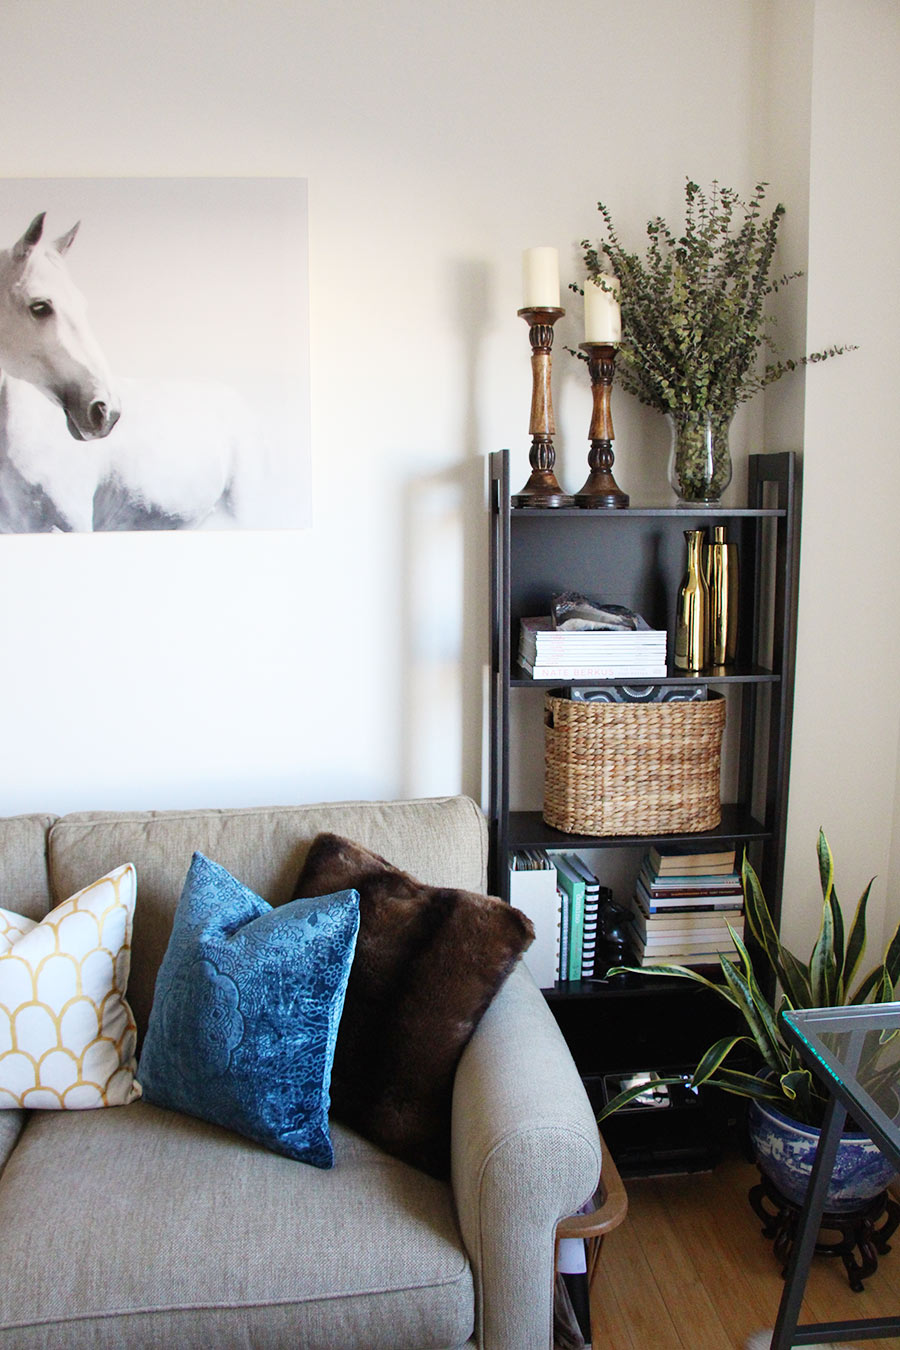 horse-wall-art-homegoods-style-homegoods-happy.jpg